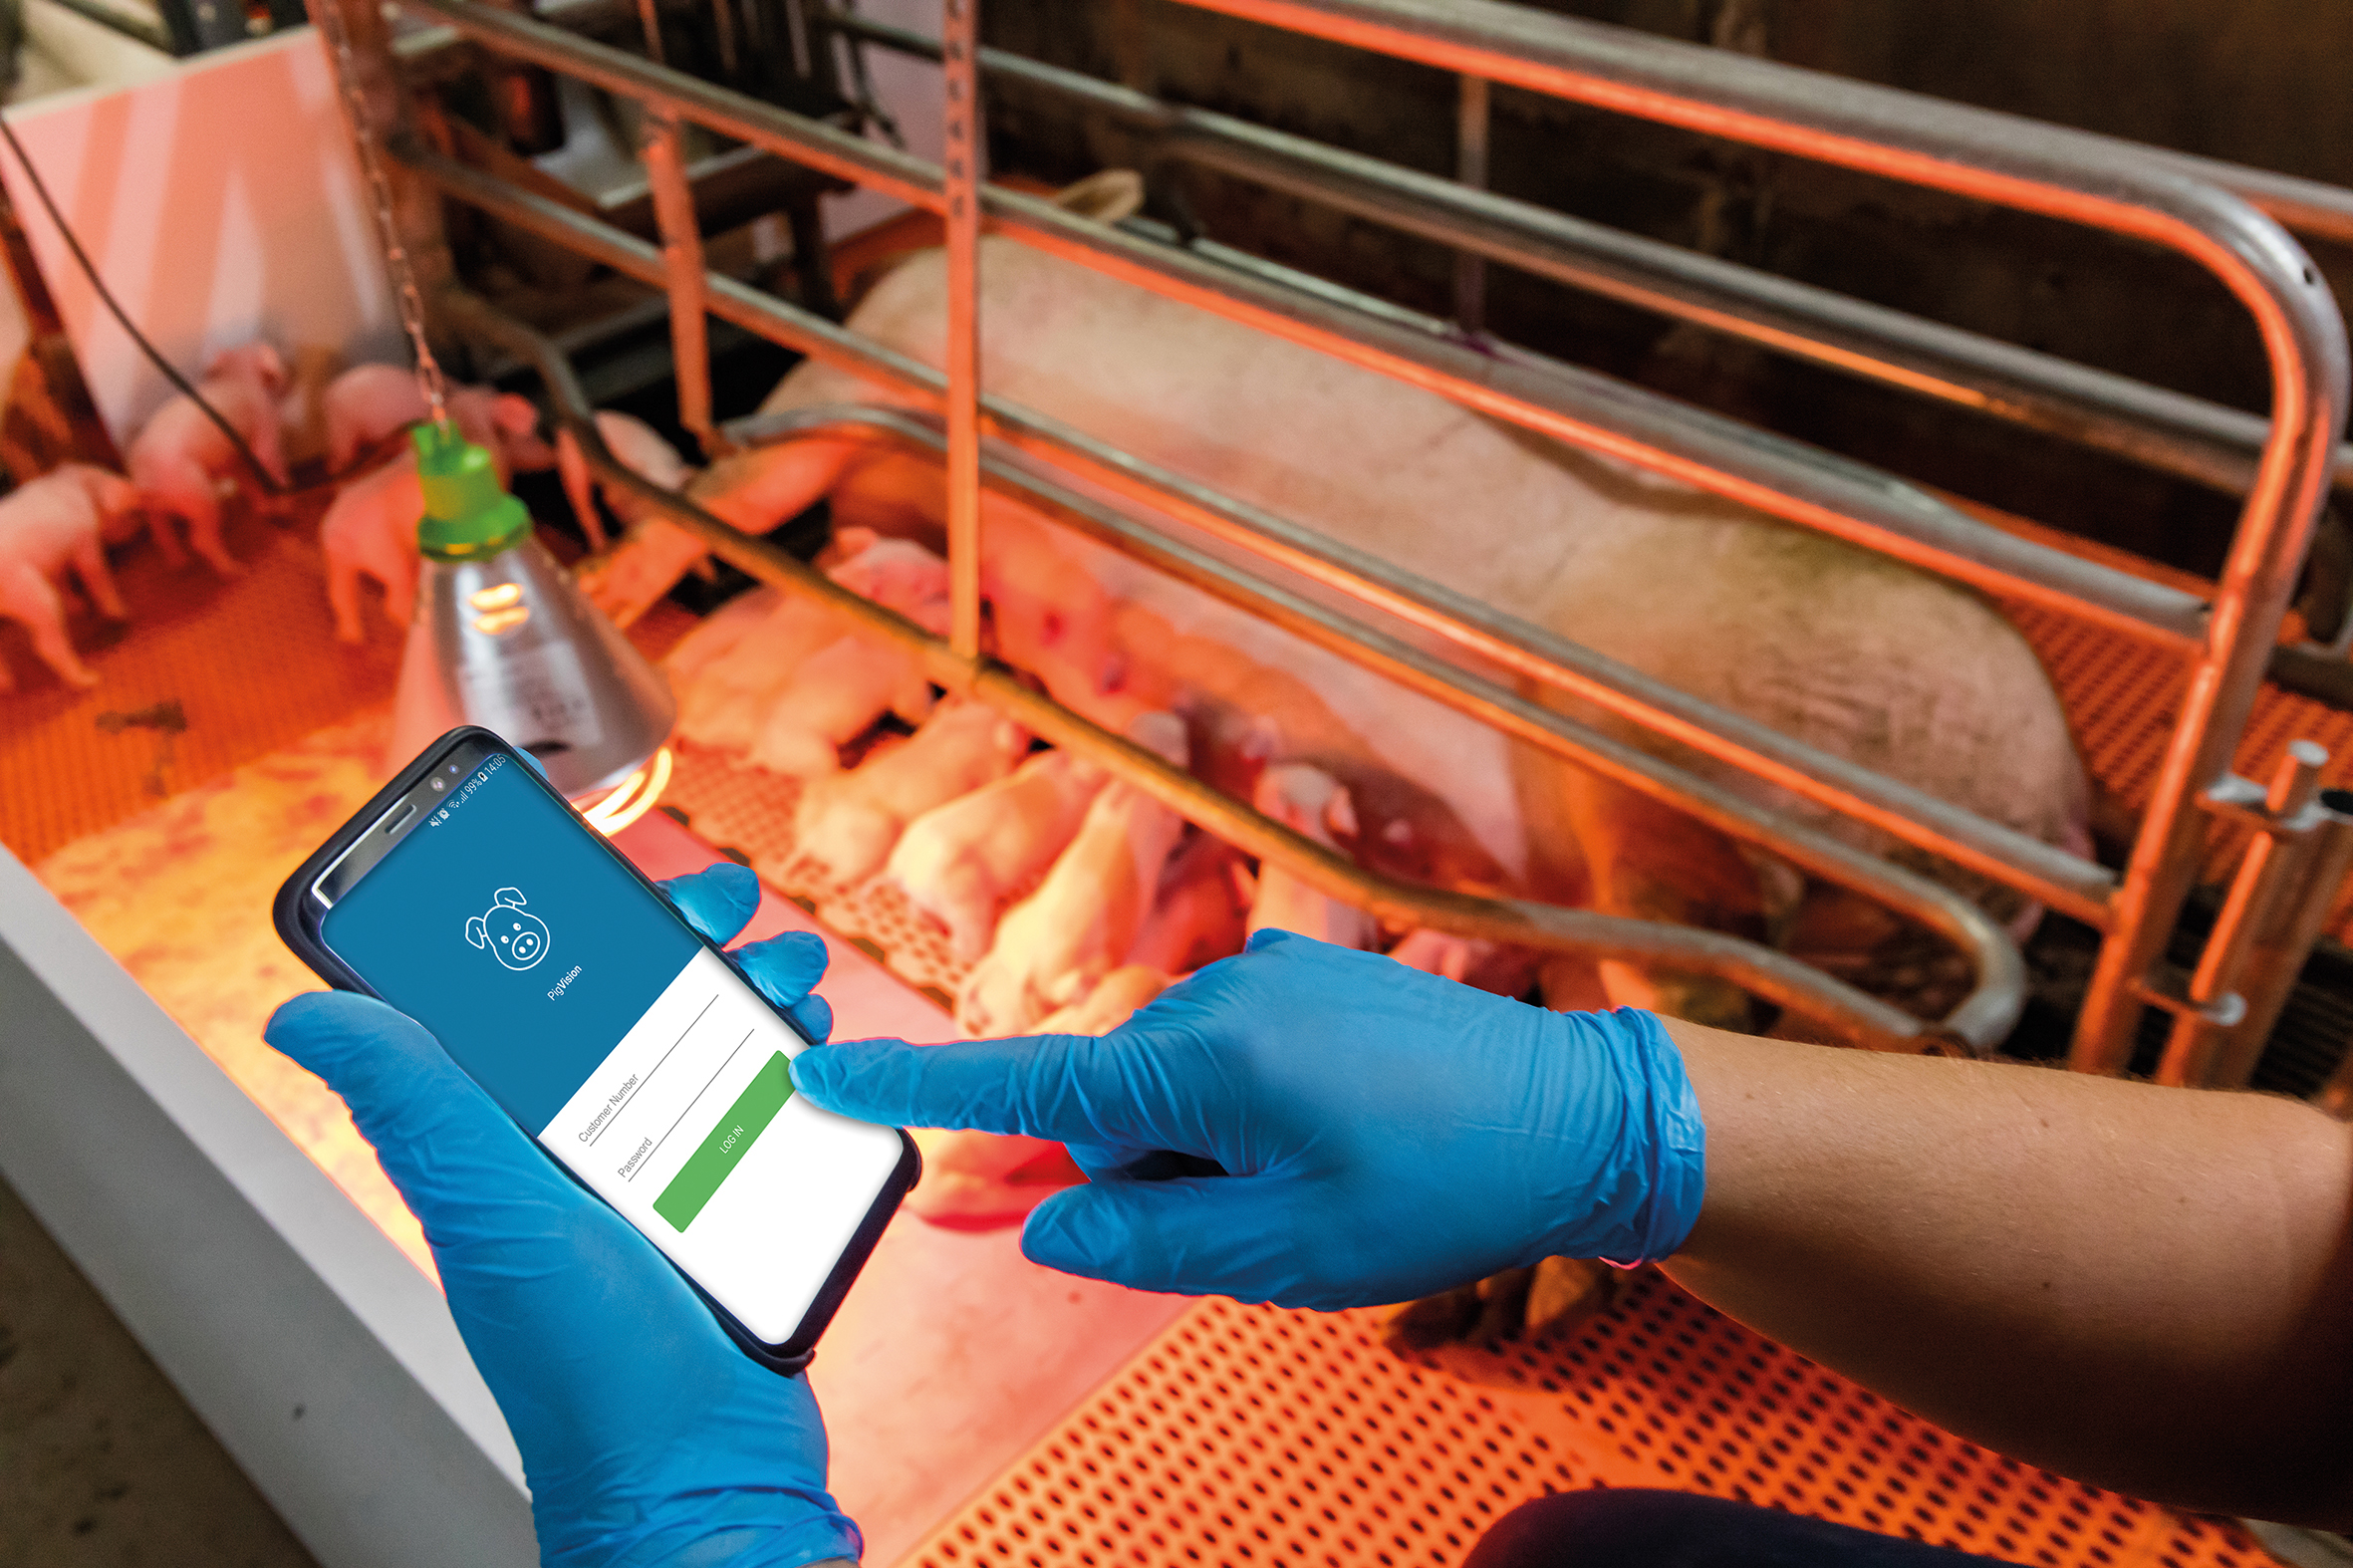 Pig farmers will be able to use mobile phone apps to record breeding and feeding herd data.